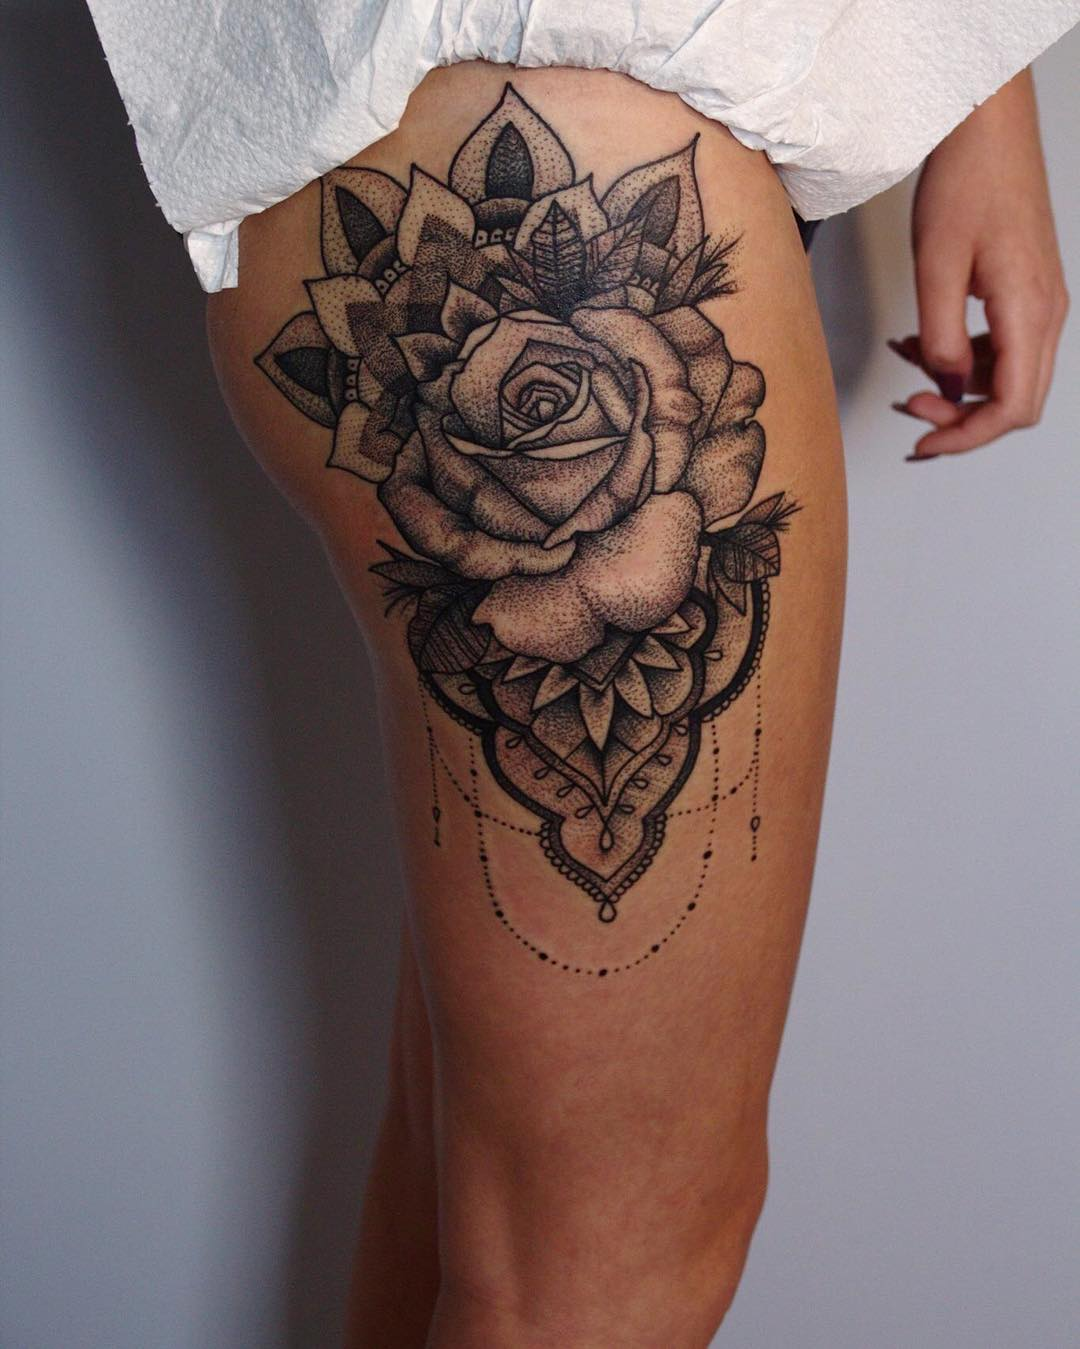 rose-tattoo-large-thigh-design